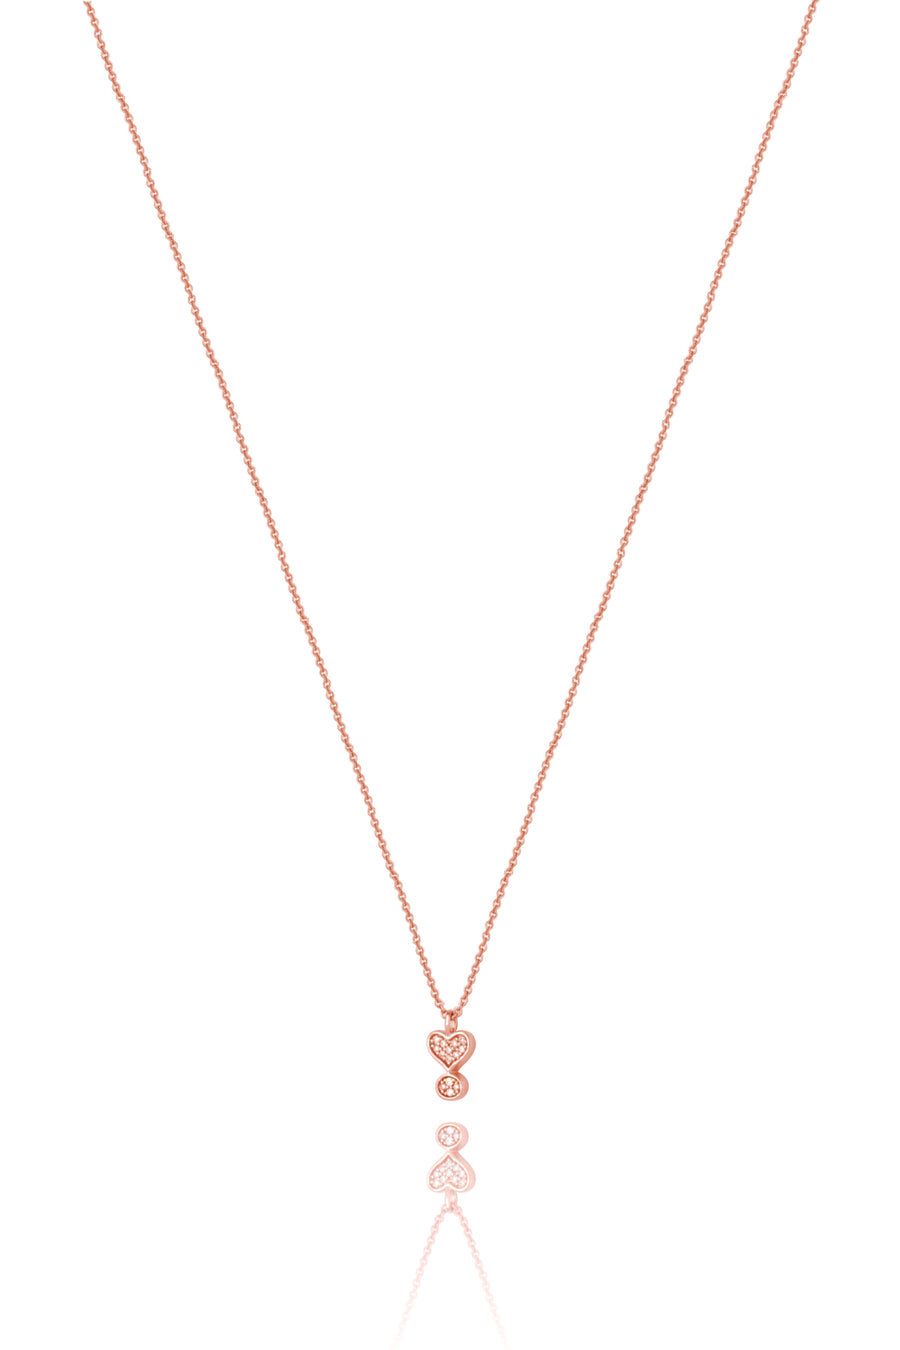 Lark & Berry's Exclamation Diamond Pave Pendant with 14K rose gold and lab-created diamonds.